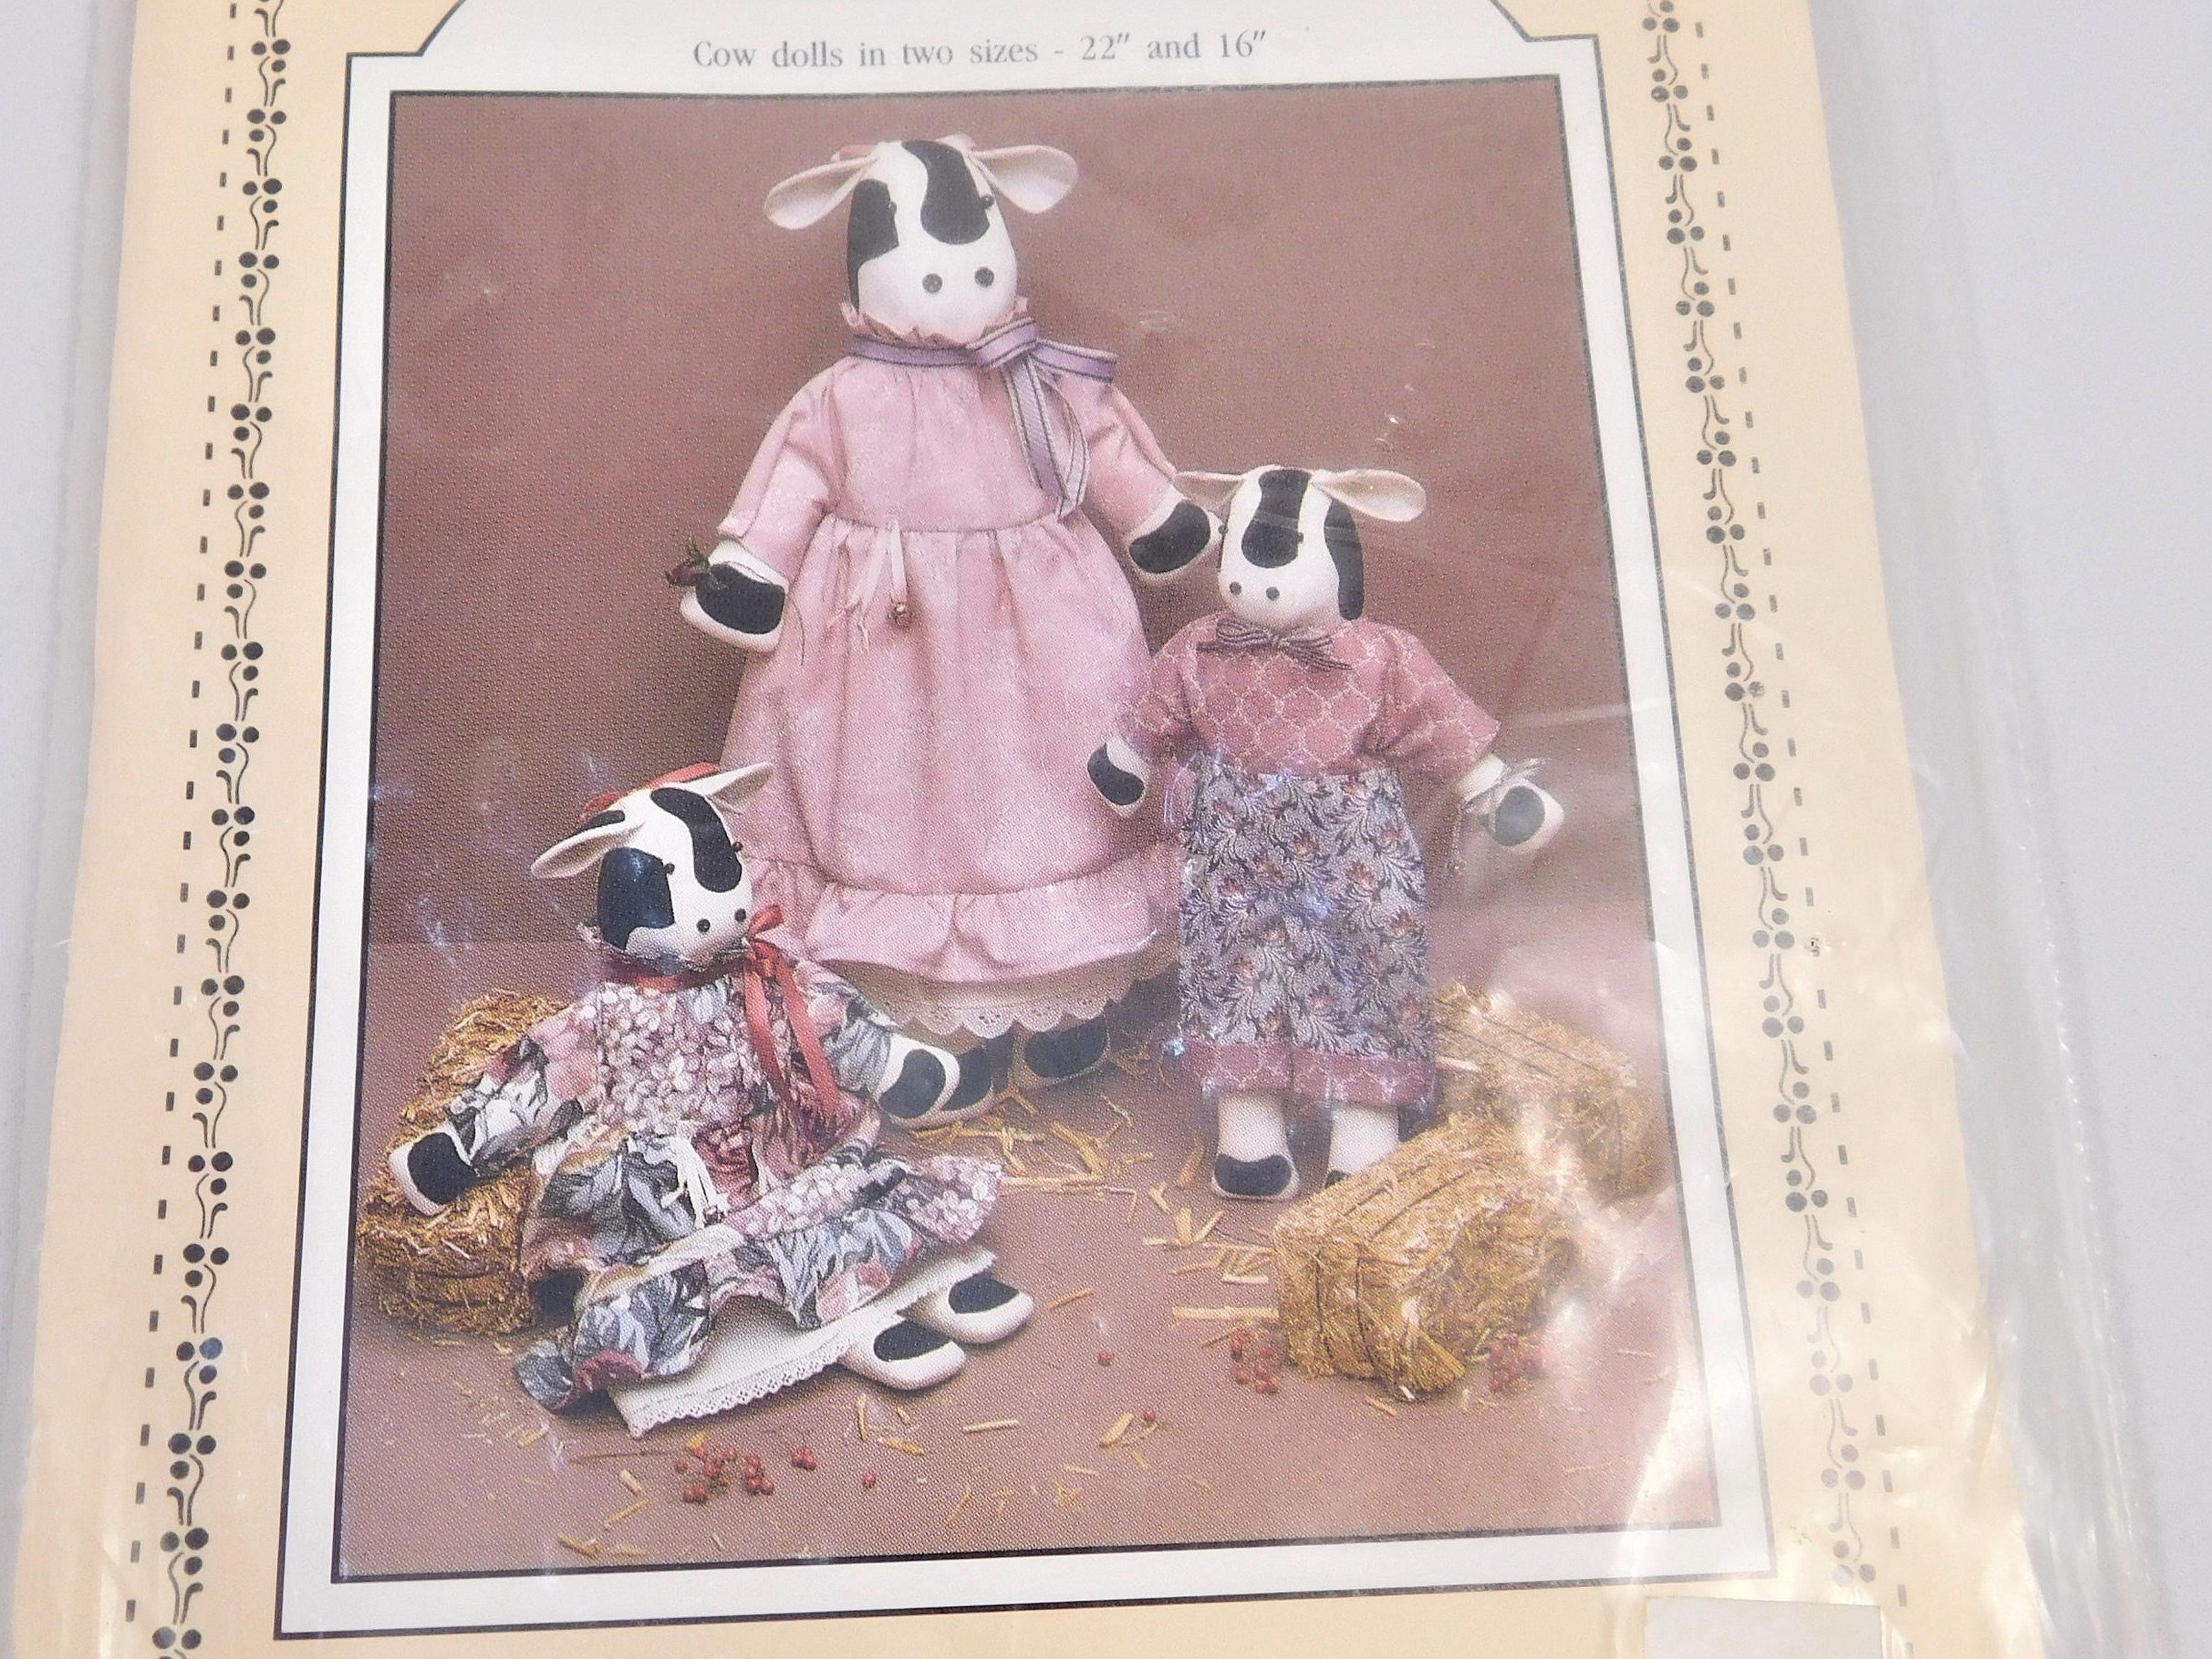 Stuffed cow sewing pattern dear bessie cow doll two sizes 22 sold by vintageoddraven jeuxipadfo Images